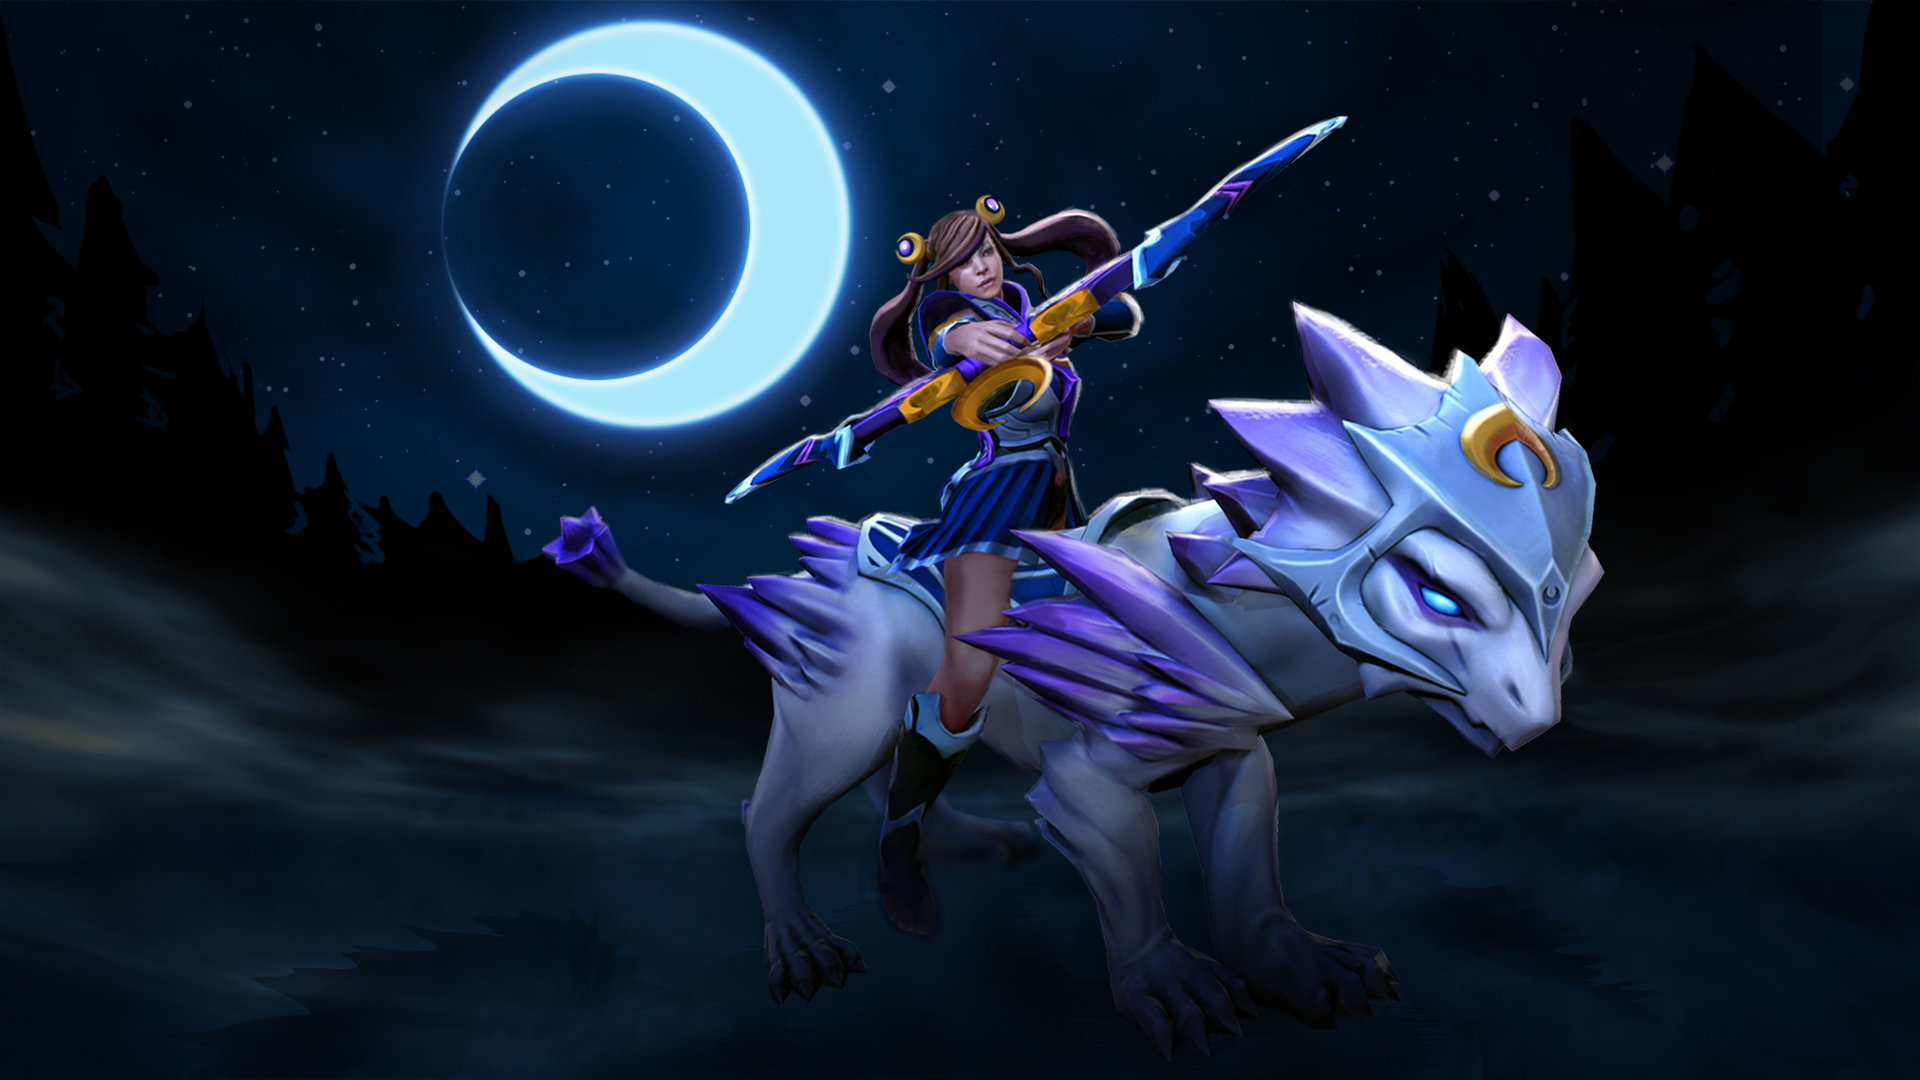 mirana high resolution desktop wallpaper wallpapers dota